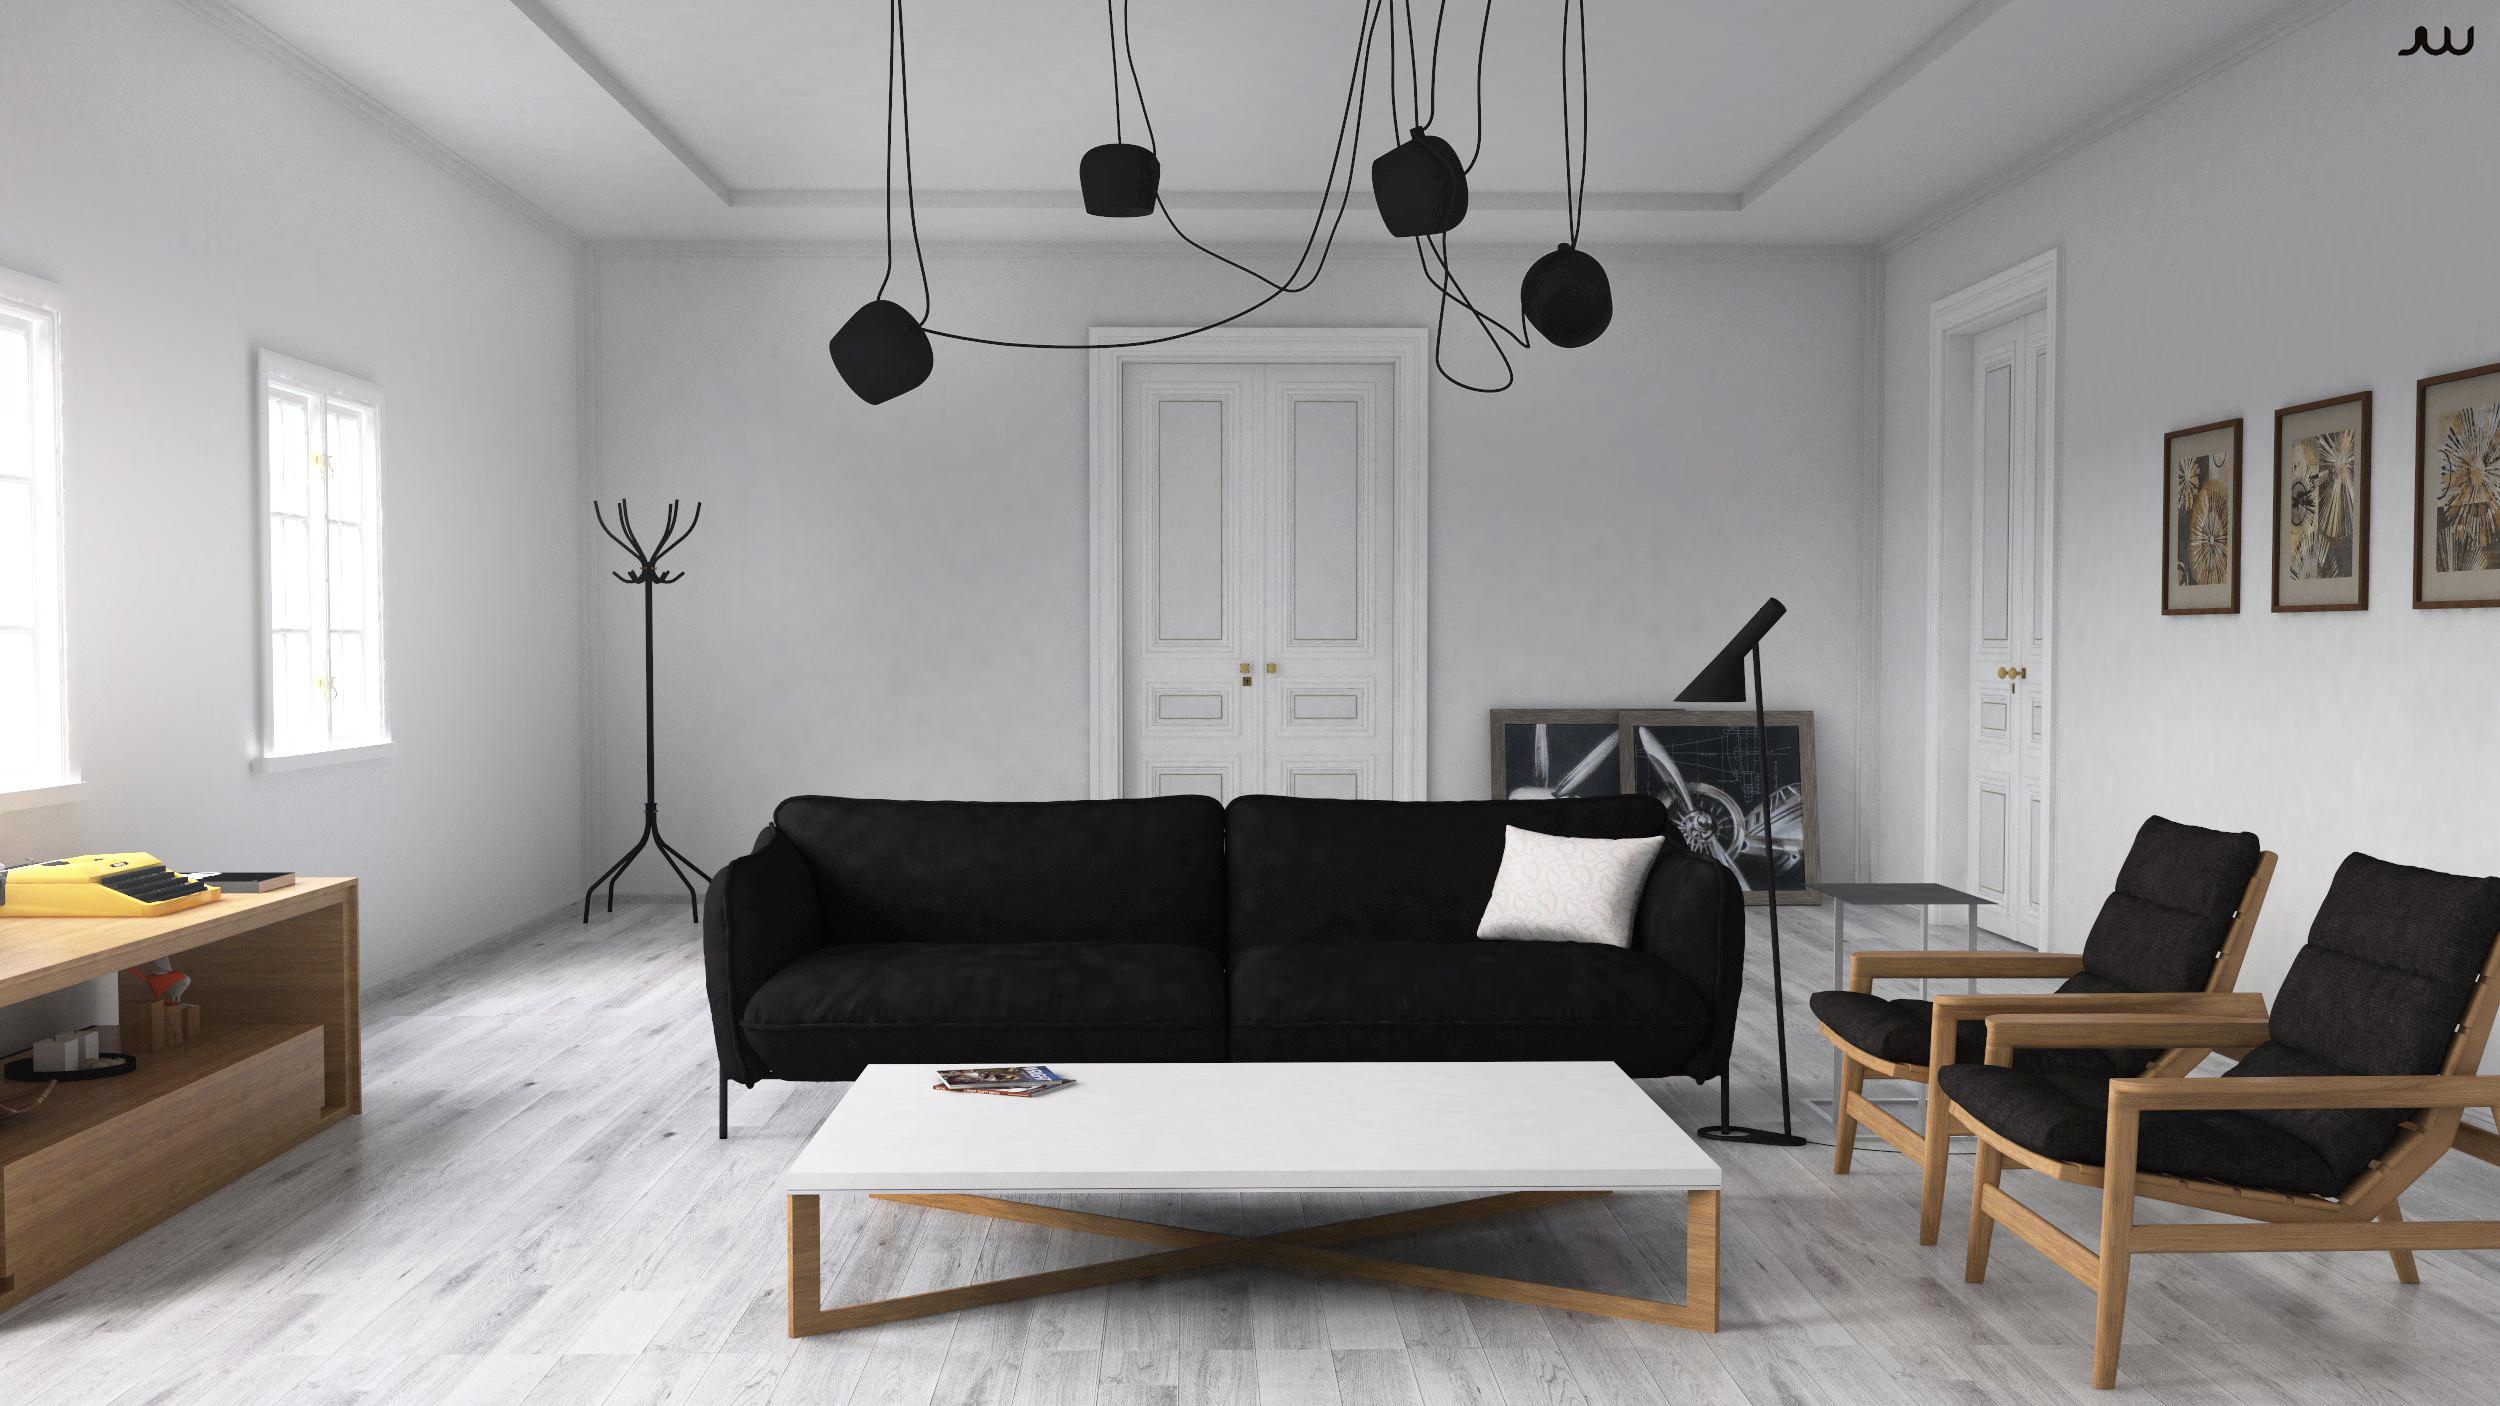 Making of scandinavian interior with sketchup vray and photoshop - Scandinavian interior ...